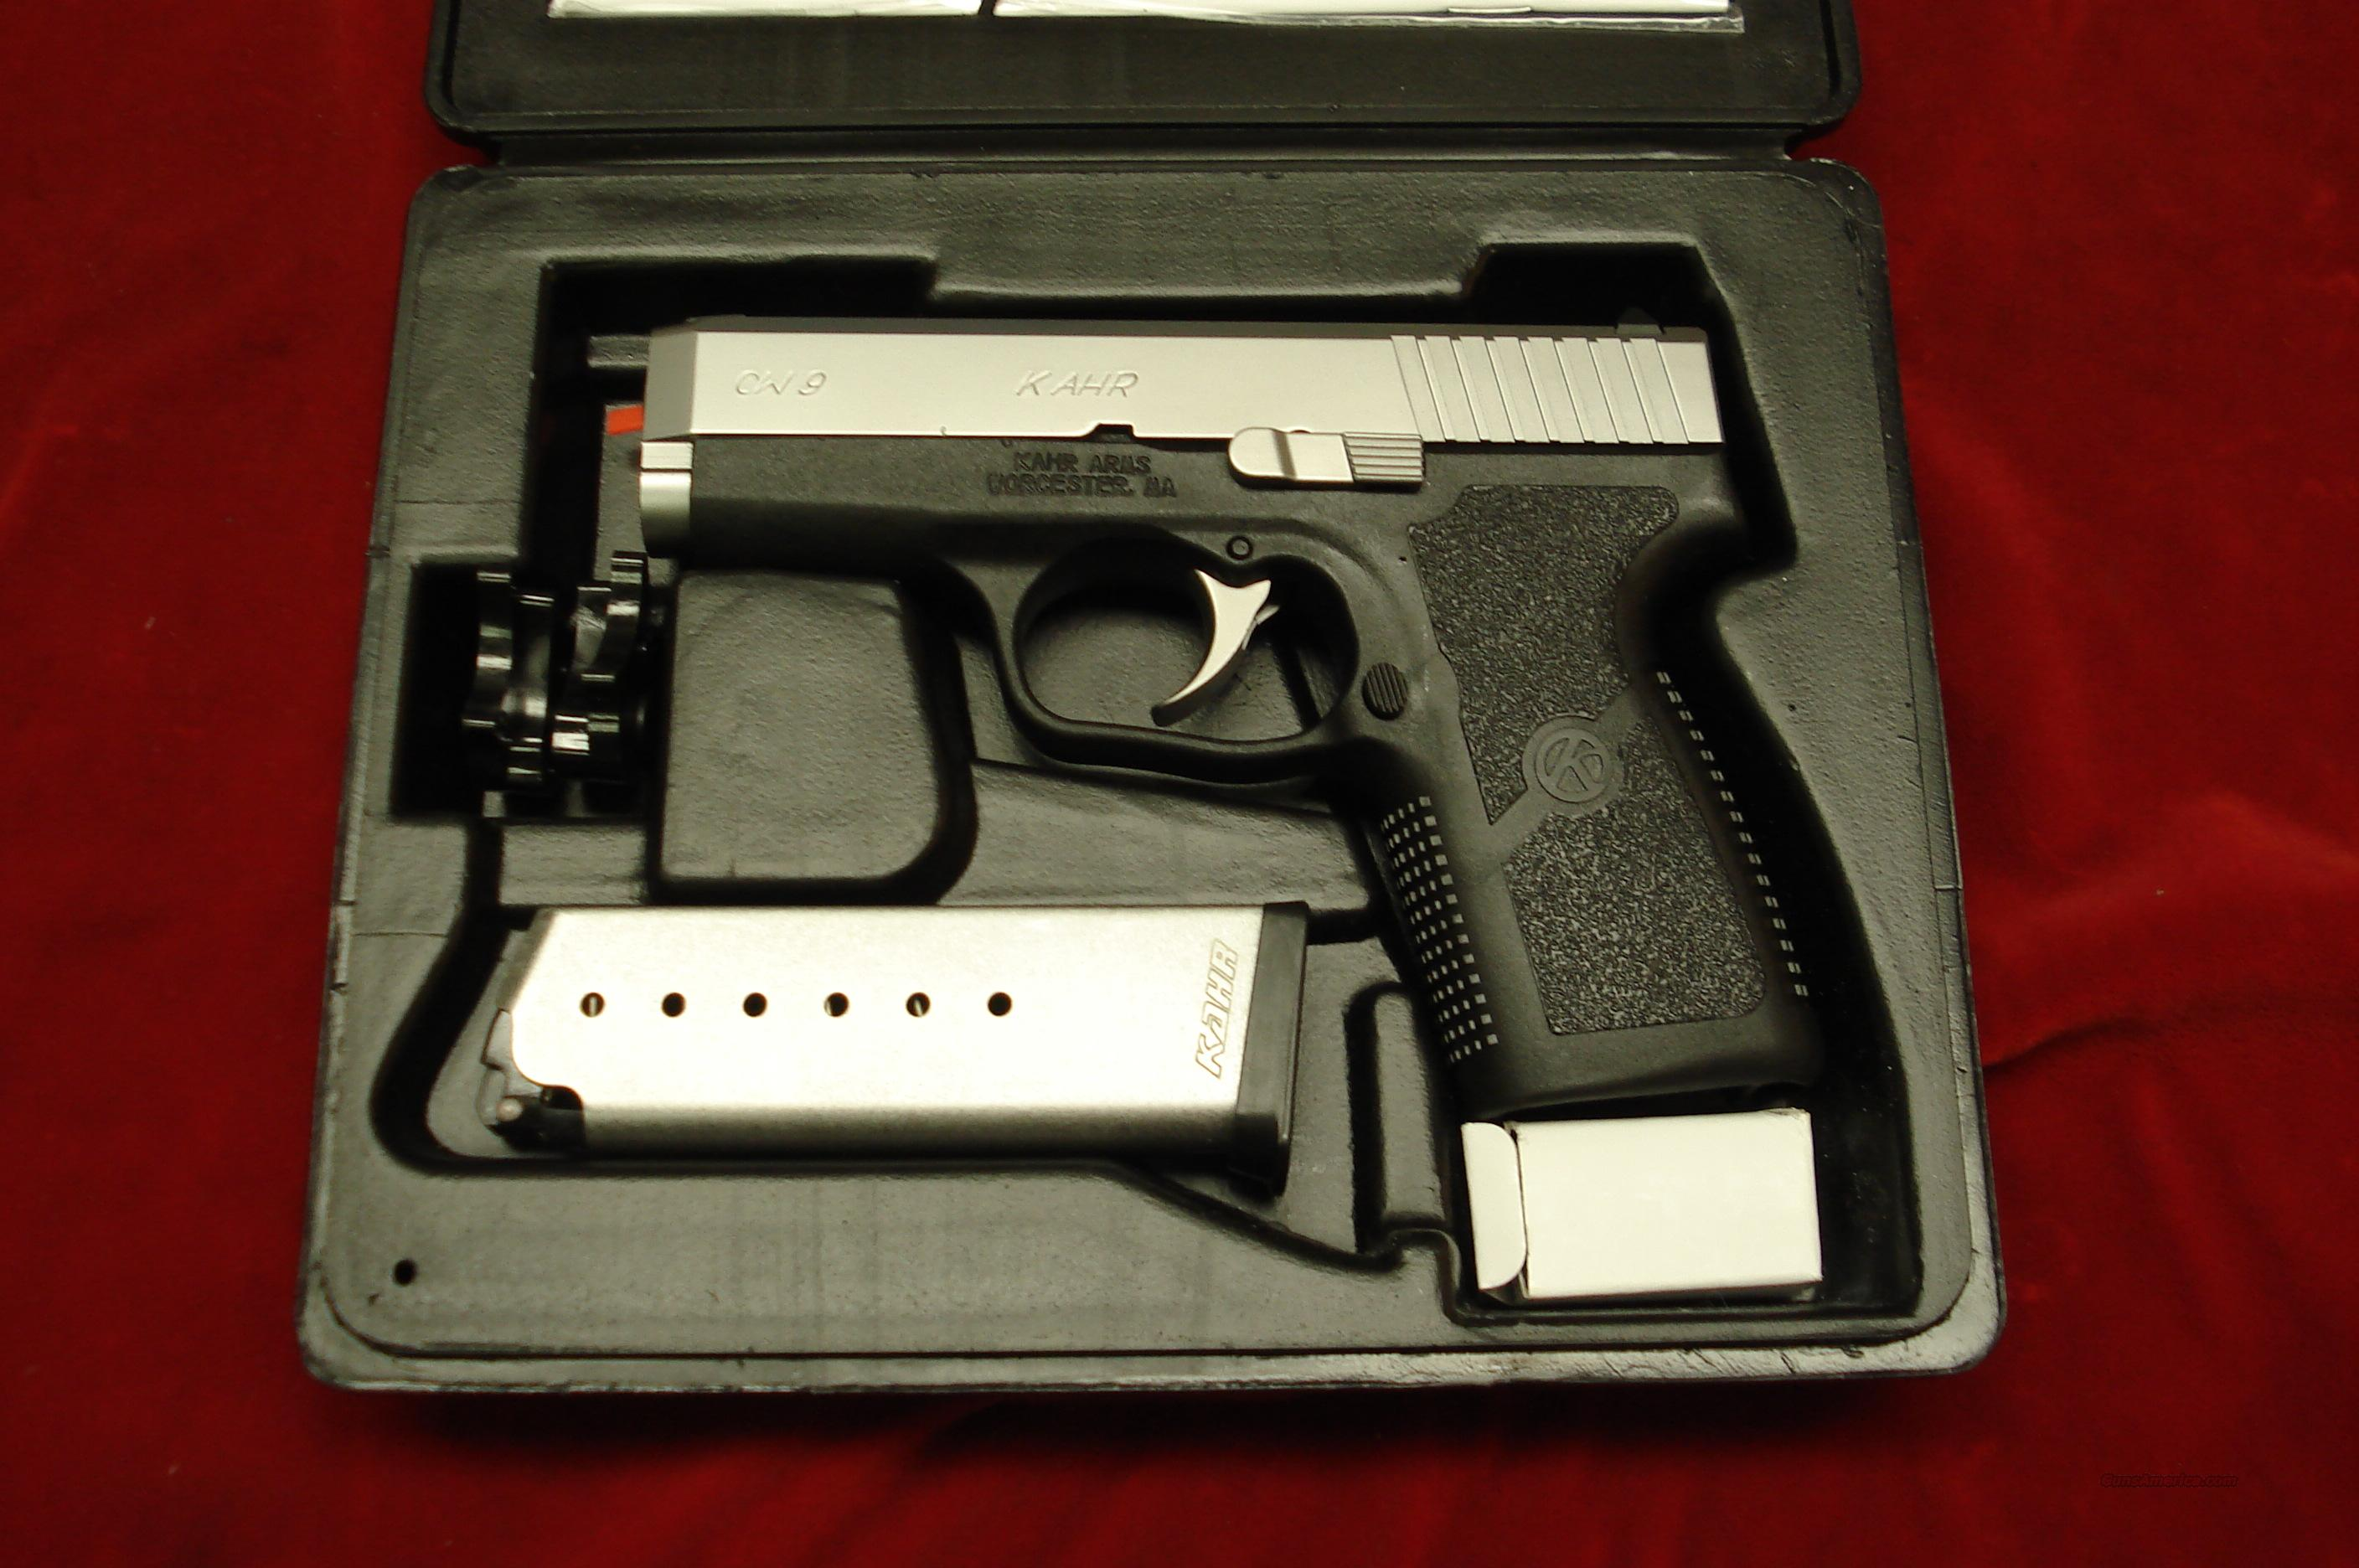 KAHR ARMS CW9 9MM STAINLESS NEW  Guns > Pistols > Kahr Pistols